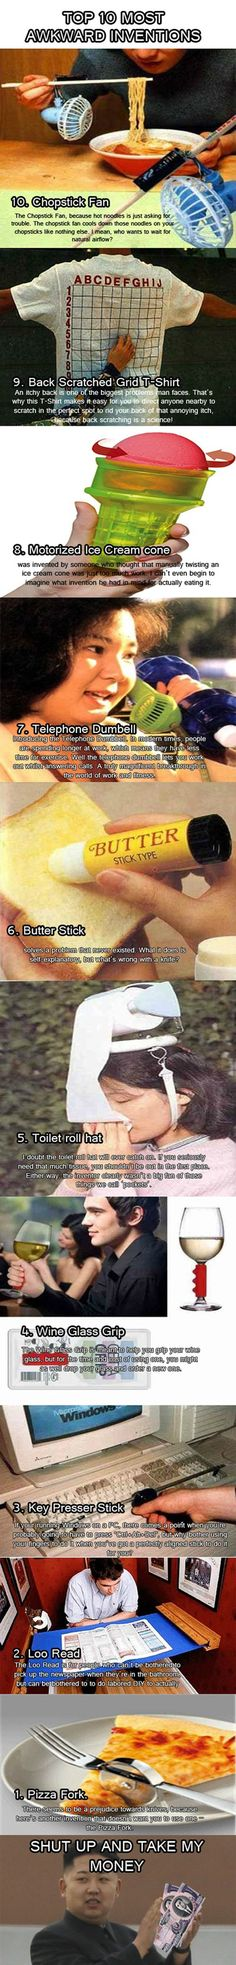 Top 10 most awkward inventions. I kind of want the toilet paper hat. I think @Stephanie Sassano needs the pizza fork...